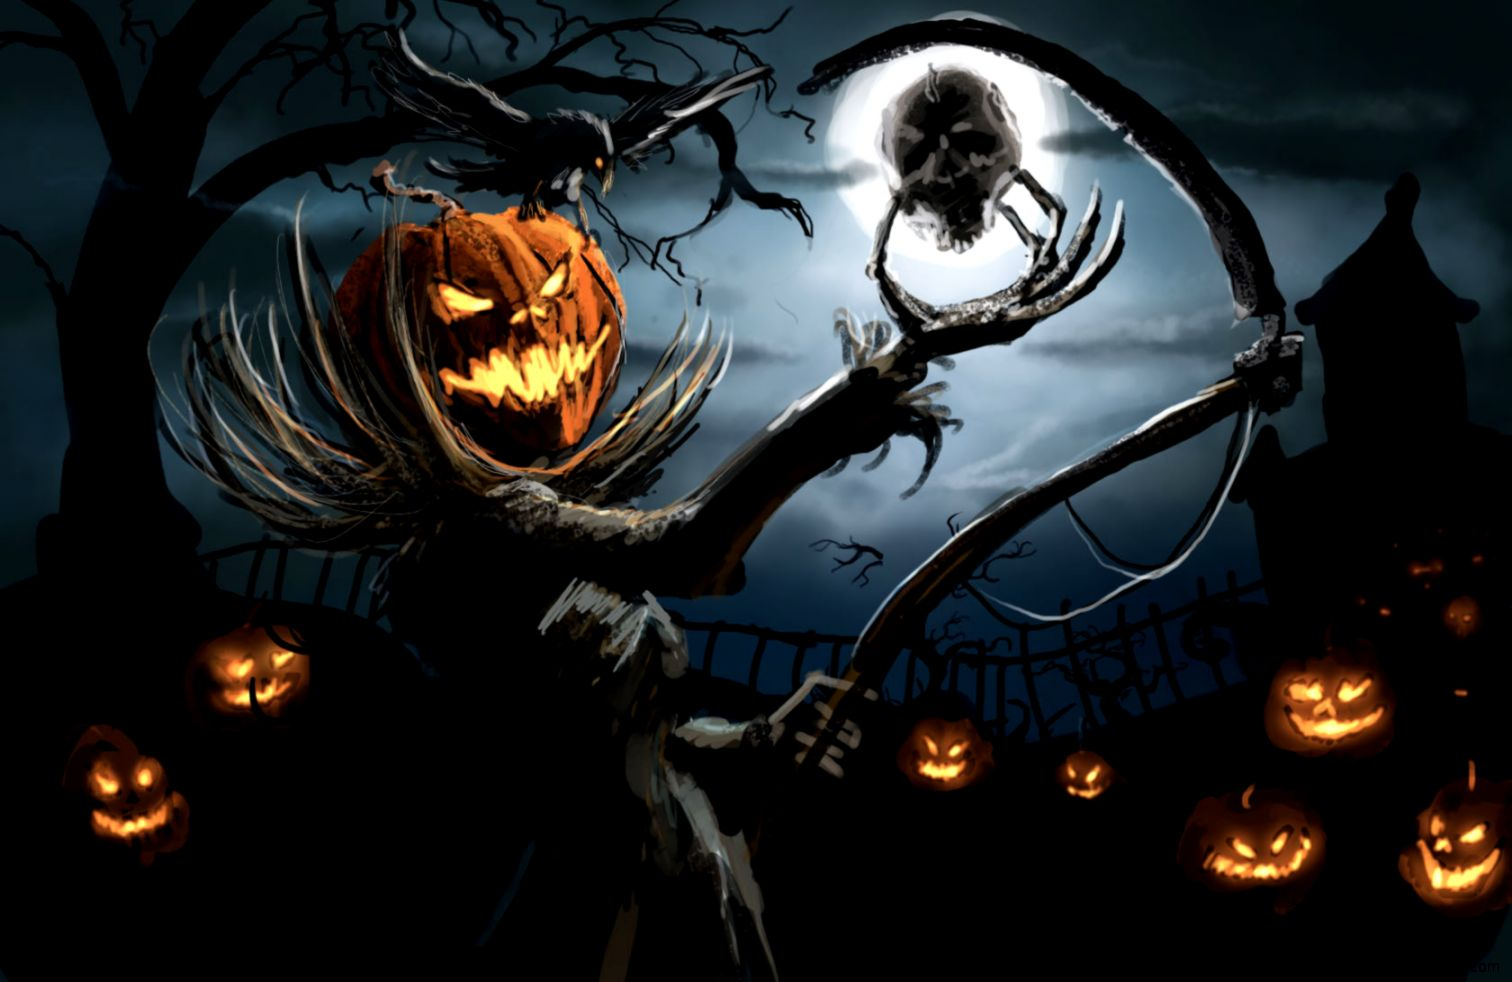 Scary Halloween Man Wallpaper   All HD Wallpapers